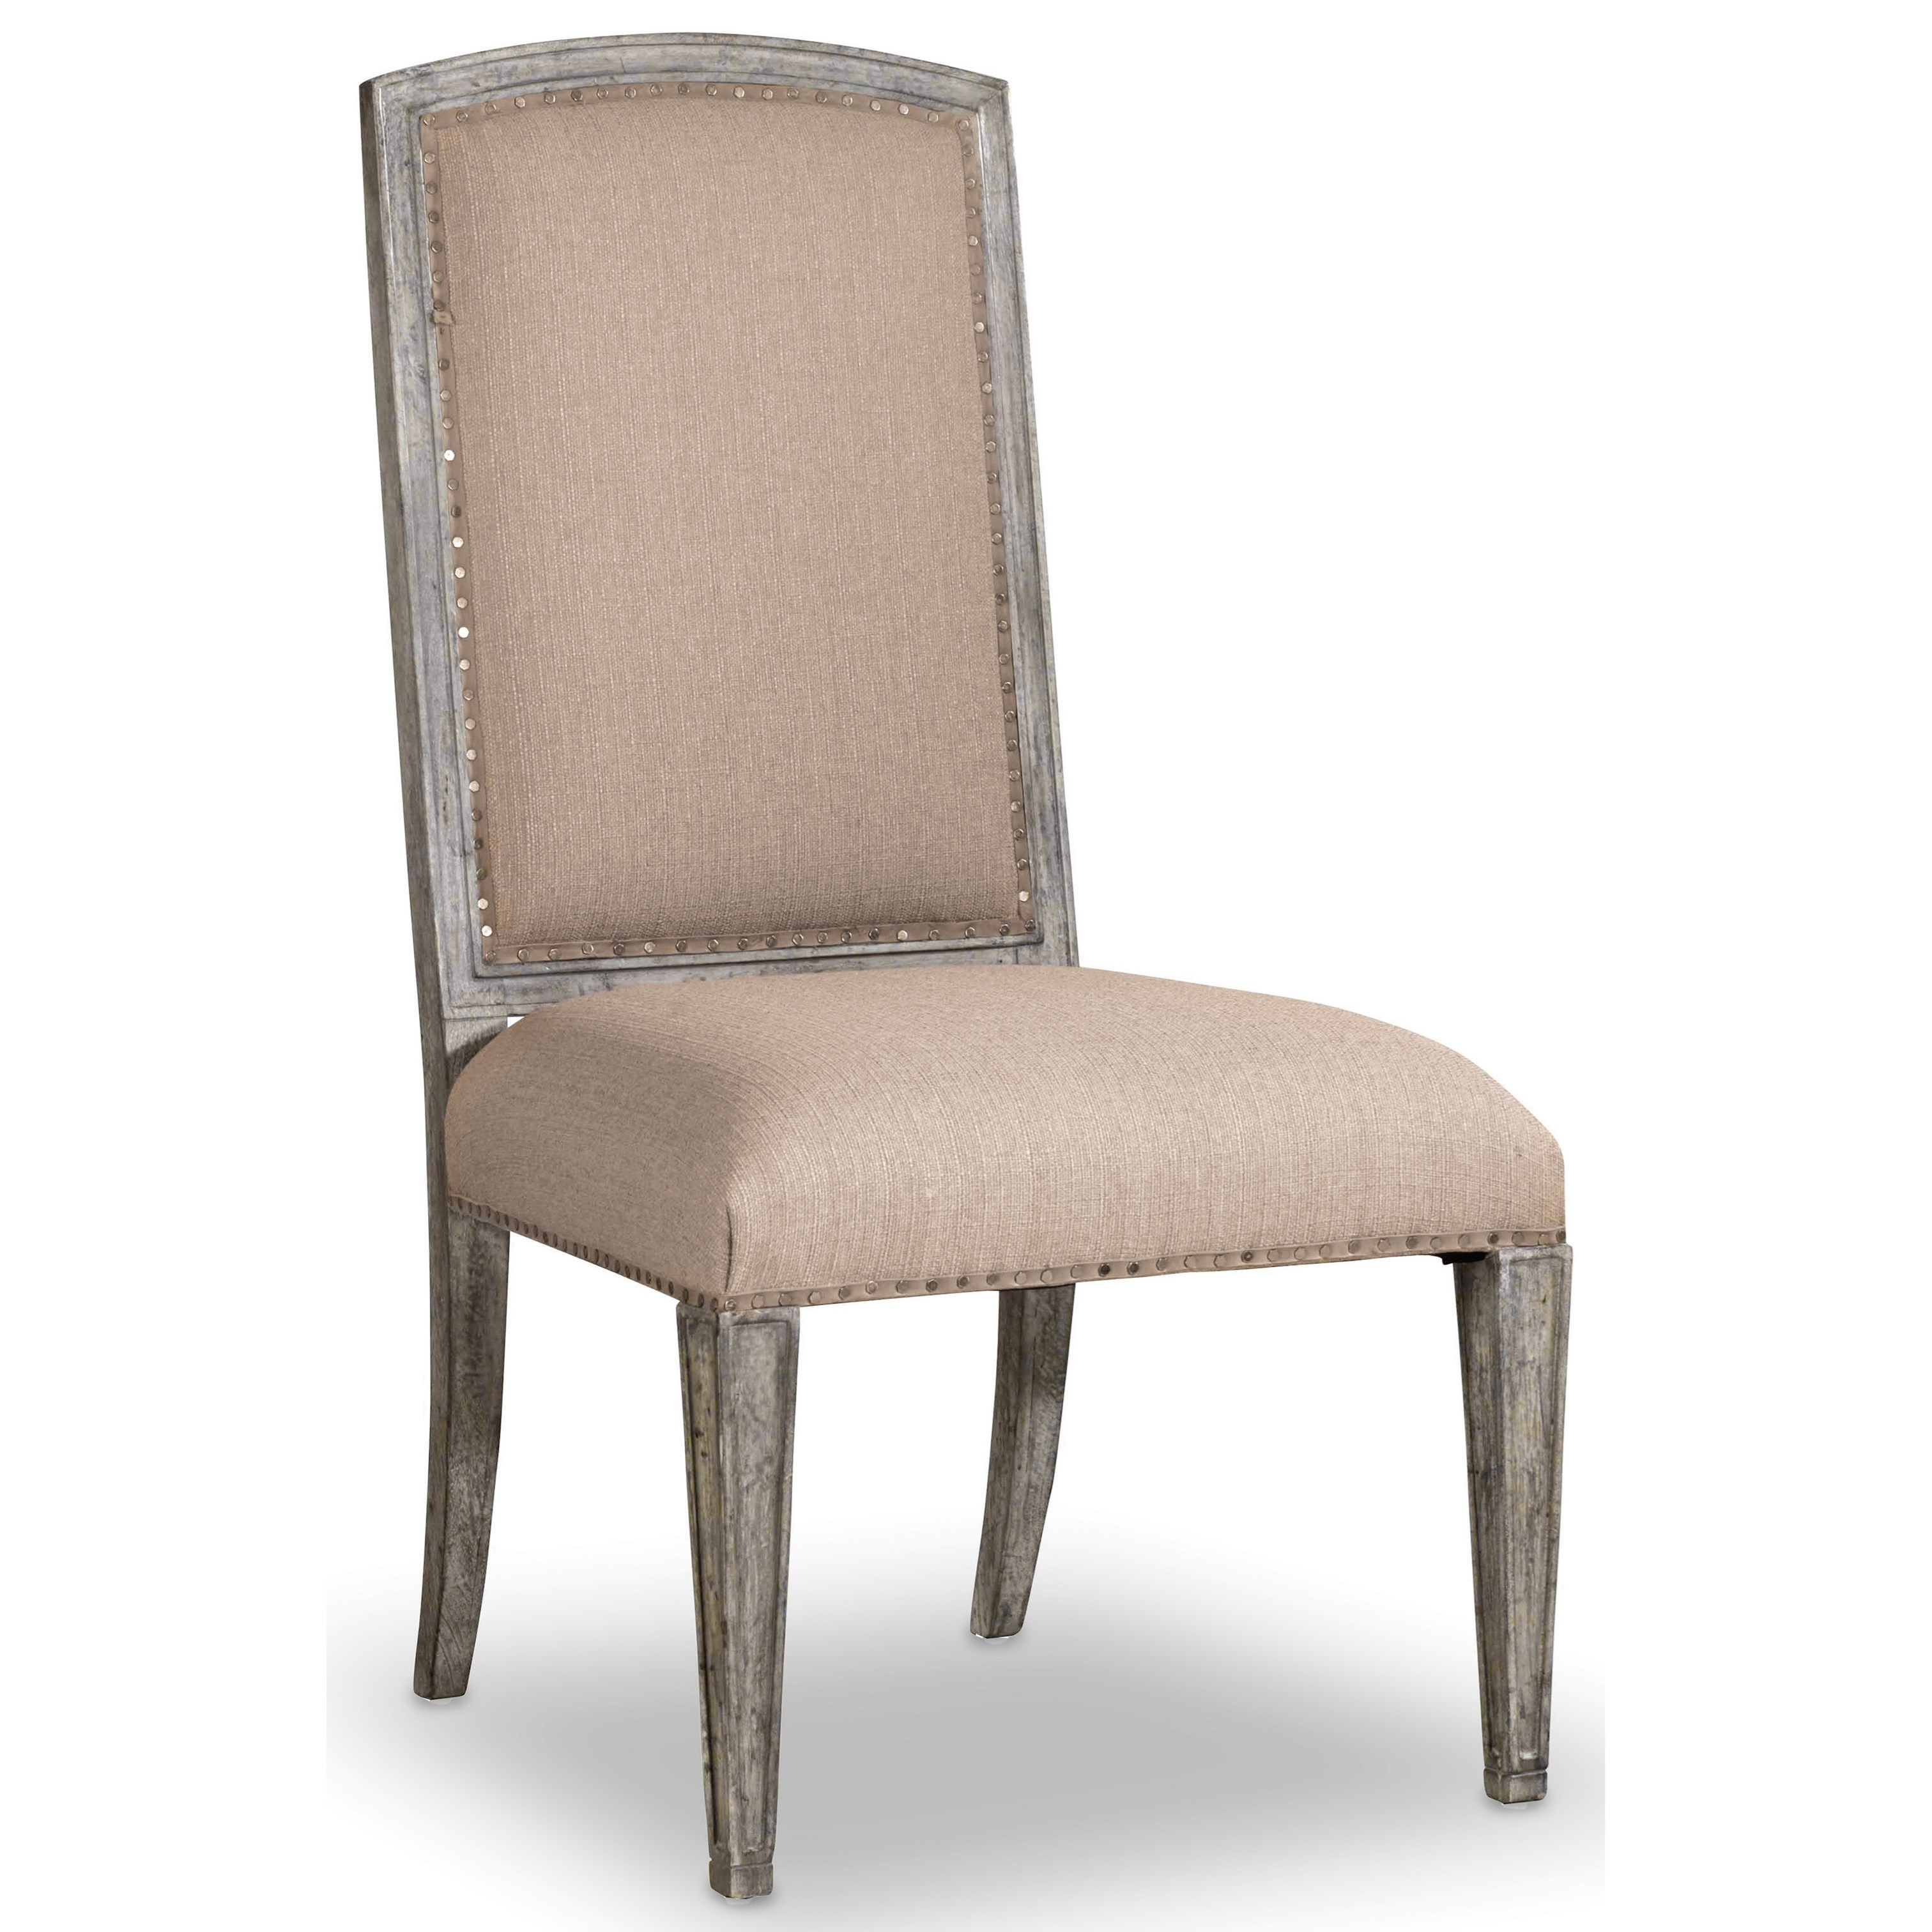 Upholstered Side Chairs Hooker Furniture True Vintage Upholstered Side Chair